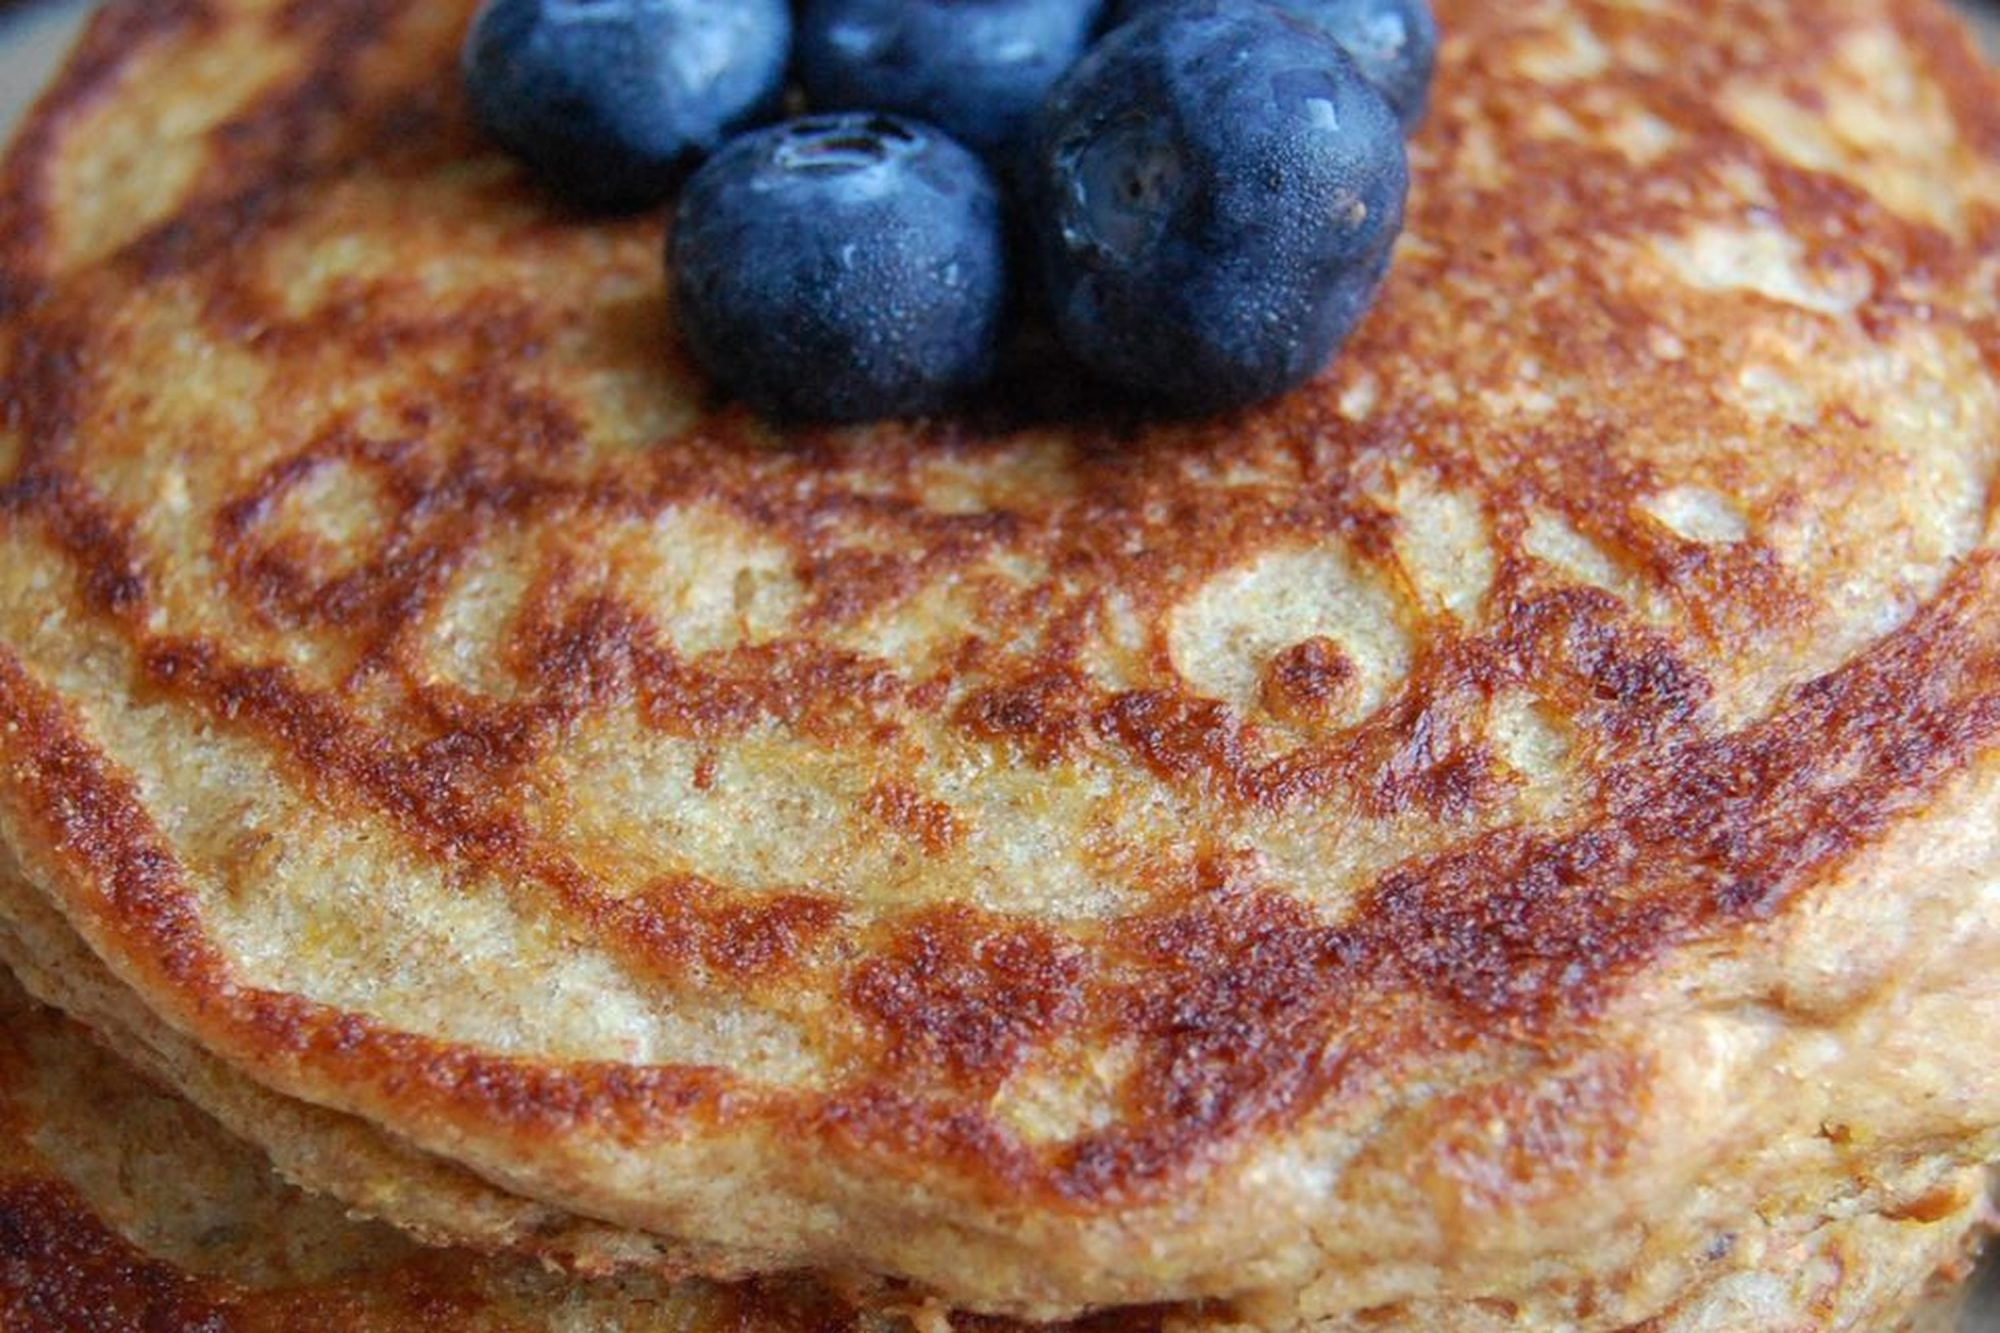 Wheat Germ Whole-Wheat Buttermilk Pancakes with blueberries on top